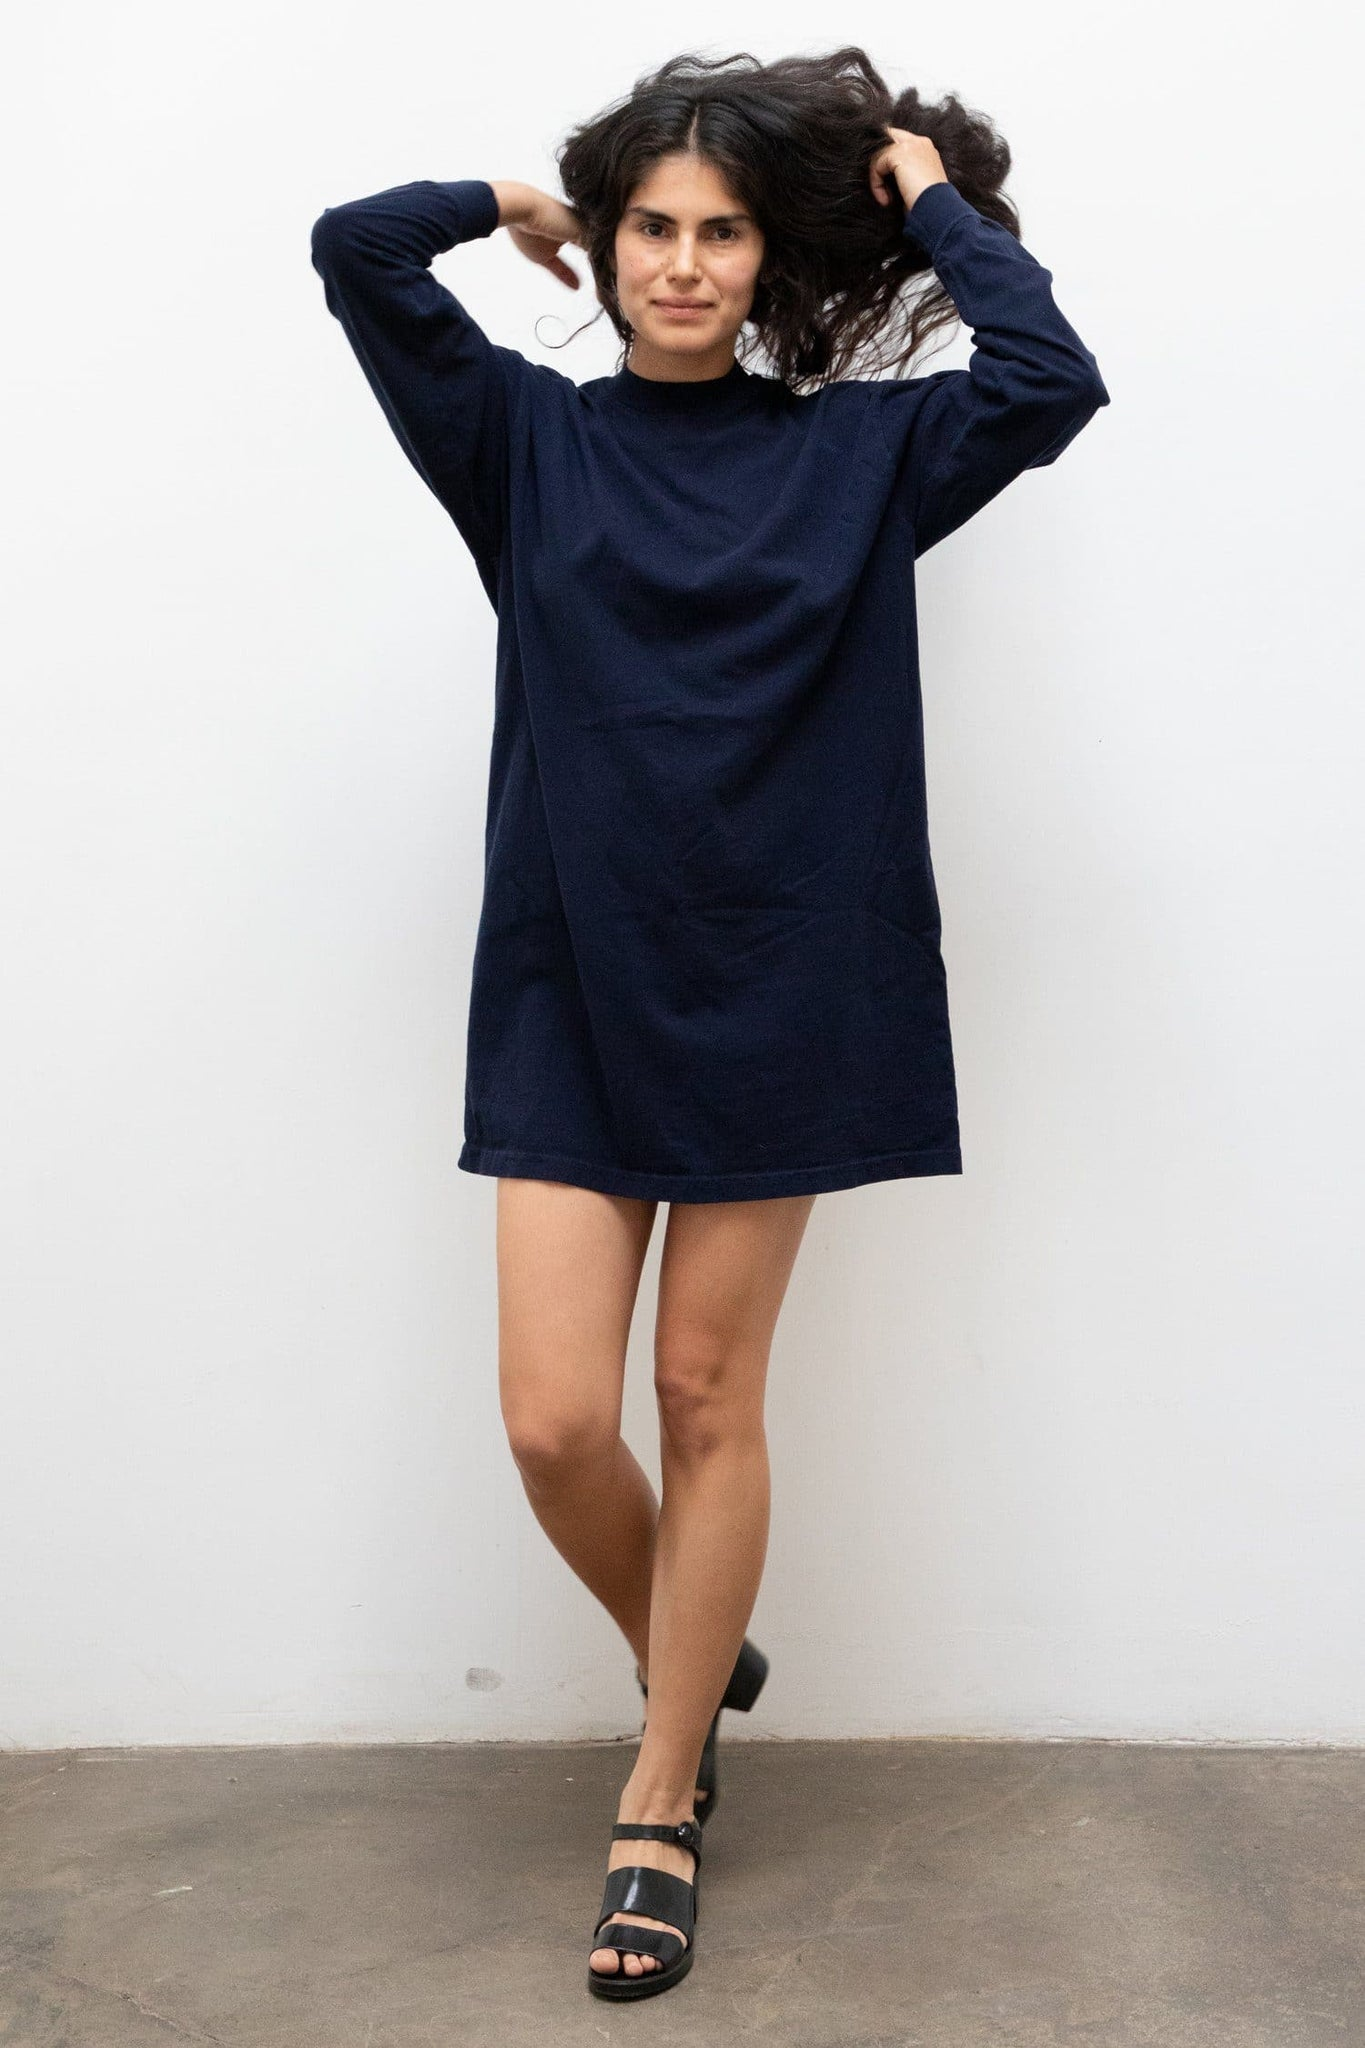 1837GD - Long Sleeve Garment Dye Mockneck Dress